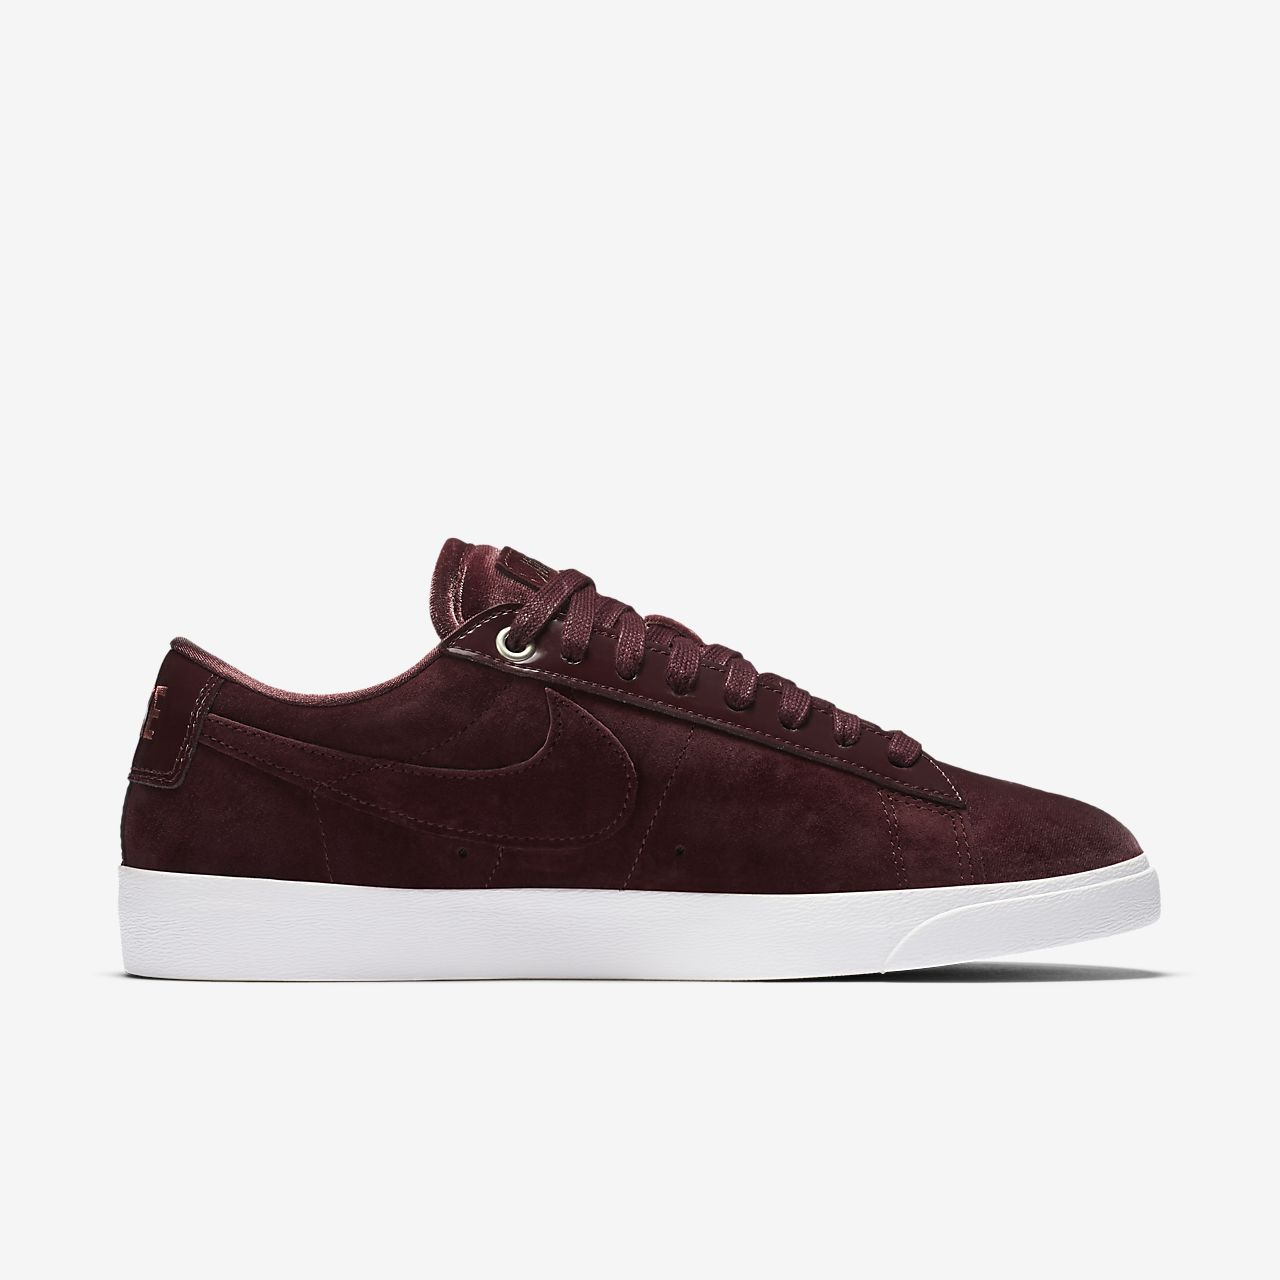 ... Nike Blazer Low LX Women's Shoe